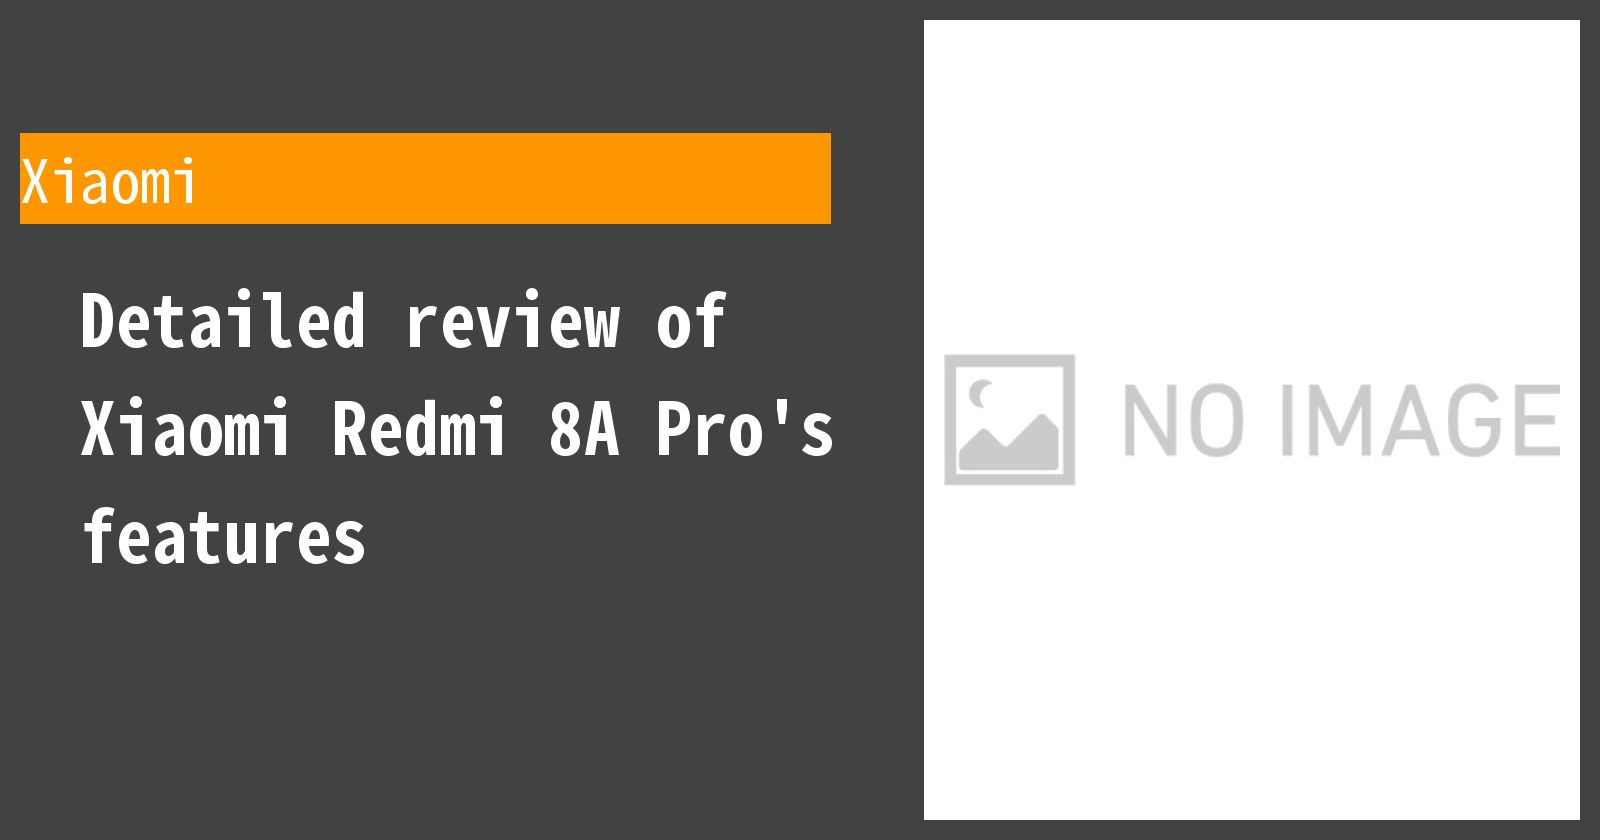 Detailed review of Xiaomi Redmi 8A Pro's features